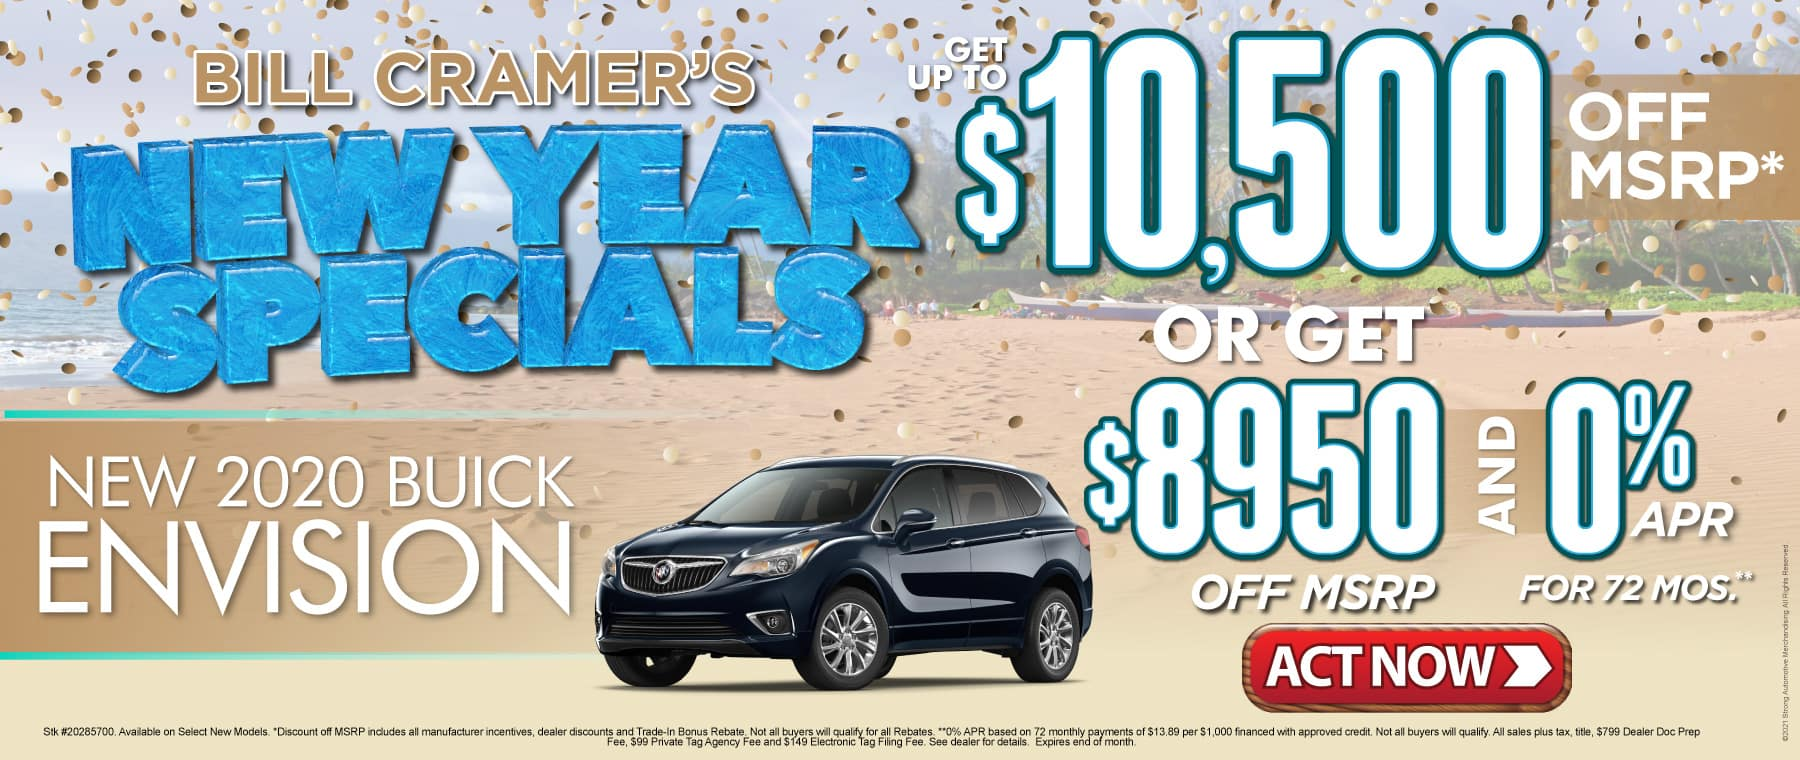 New 2020 Buick Envision - Get up to $10,500 off msrp - Act Now